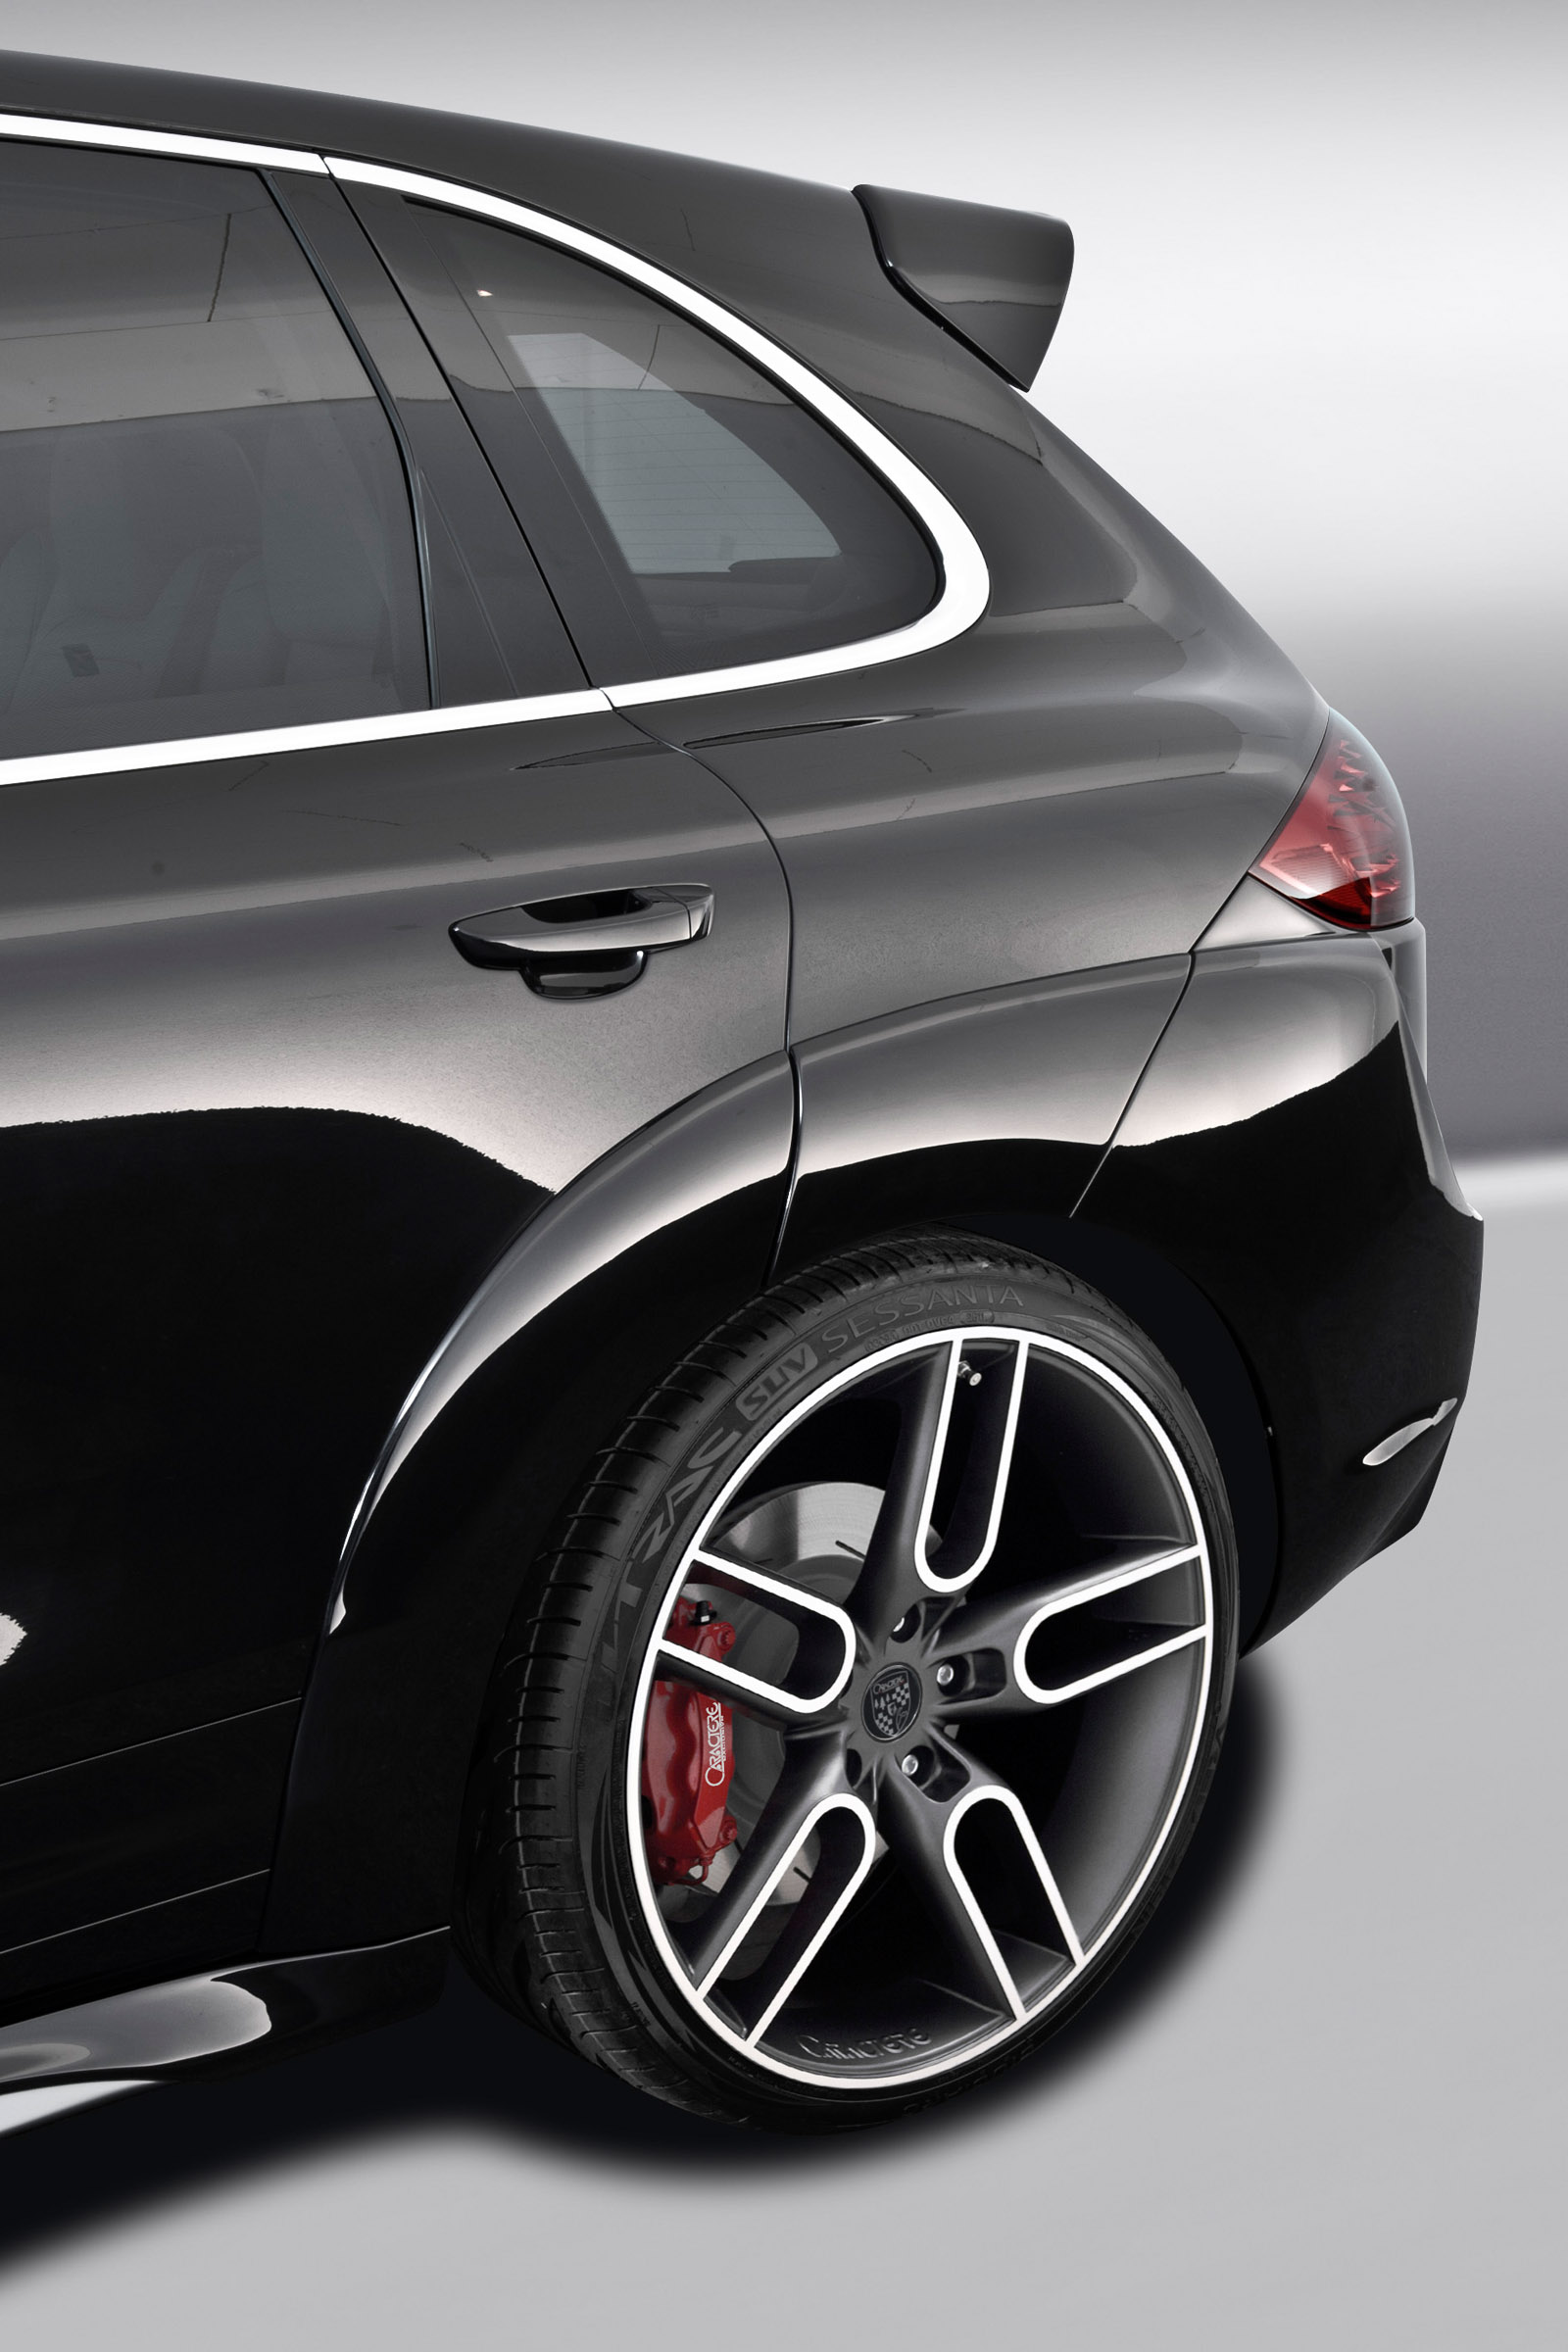 Black Car Wallpapers For Mobile 2012 Caractere Porsche Cayenne